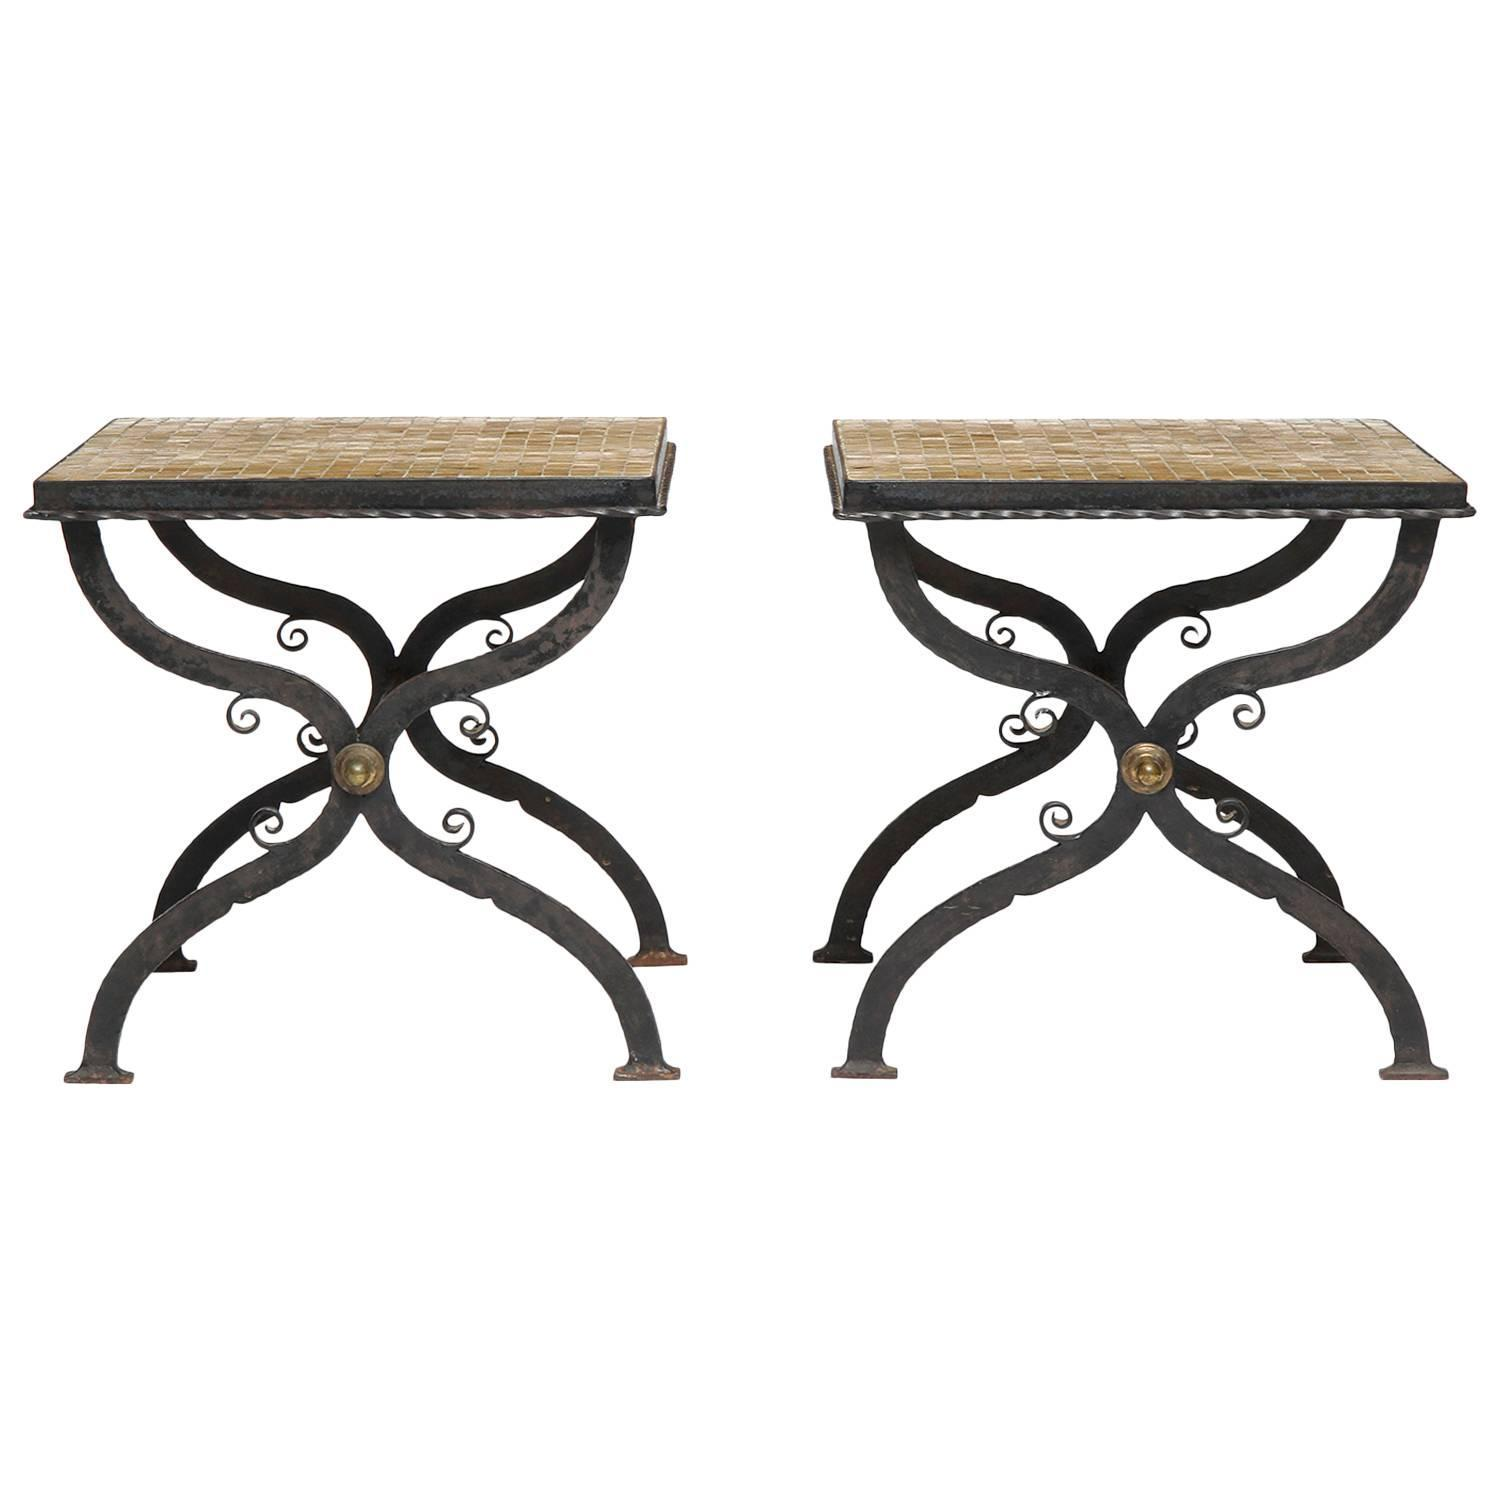 Pair of tile inlaid wrought iron x base side tables at 1stdibs for Wrought iron side table base